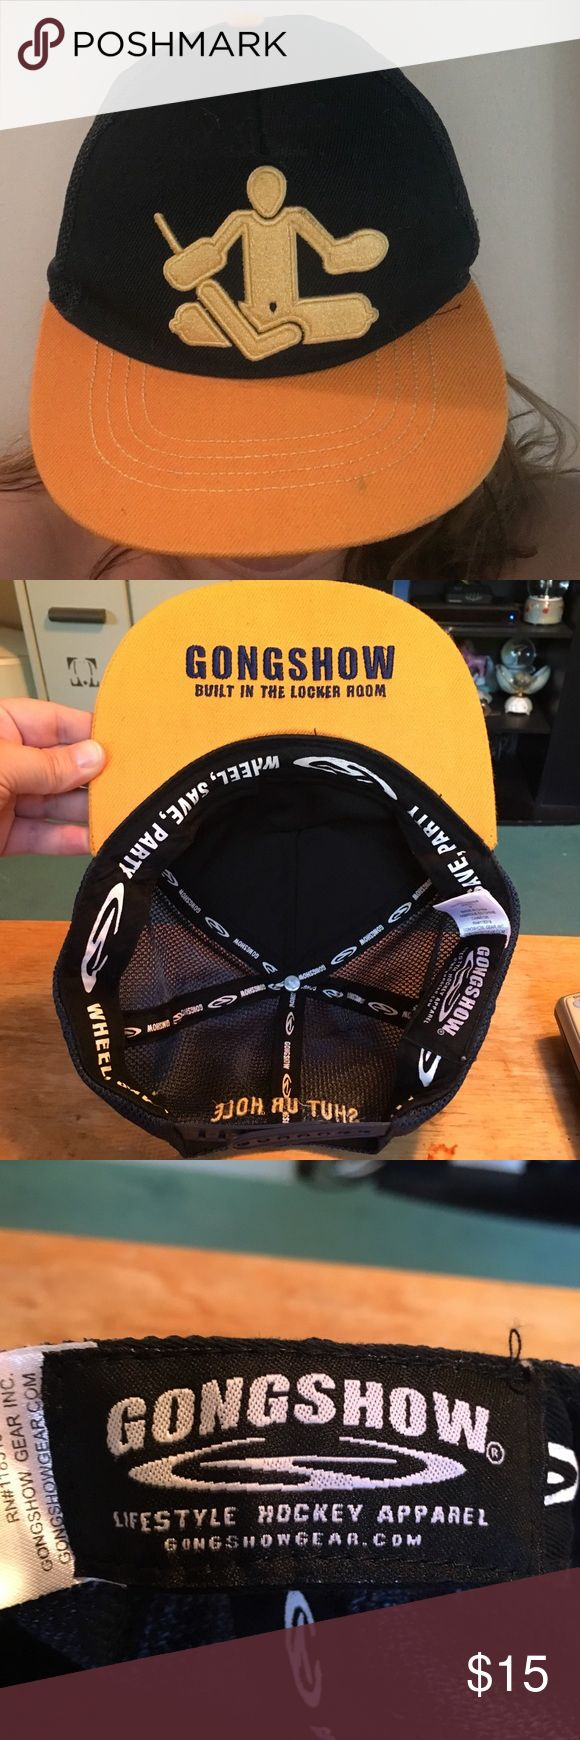 "GONG SHOW Goalie Trucker Hockey Hat ""Shut UR Hole GONG SHOW is known for their hockey attire. This is a trucker hat that features a goalie and his 5 hole. On the back it has embroidered ""Shut Ur Hole"" It is a snap back so one size fits most. Gong Show Accessories Hats"